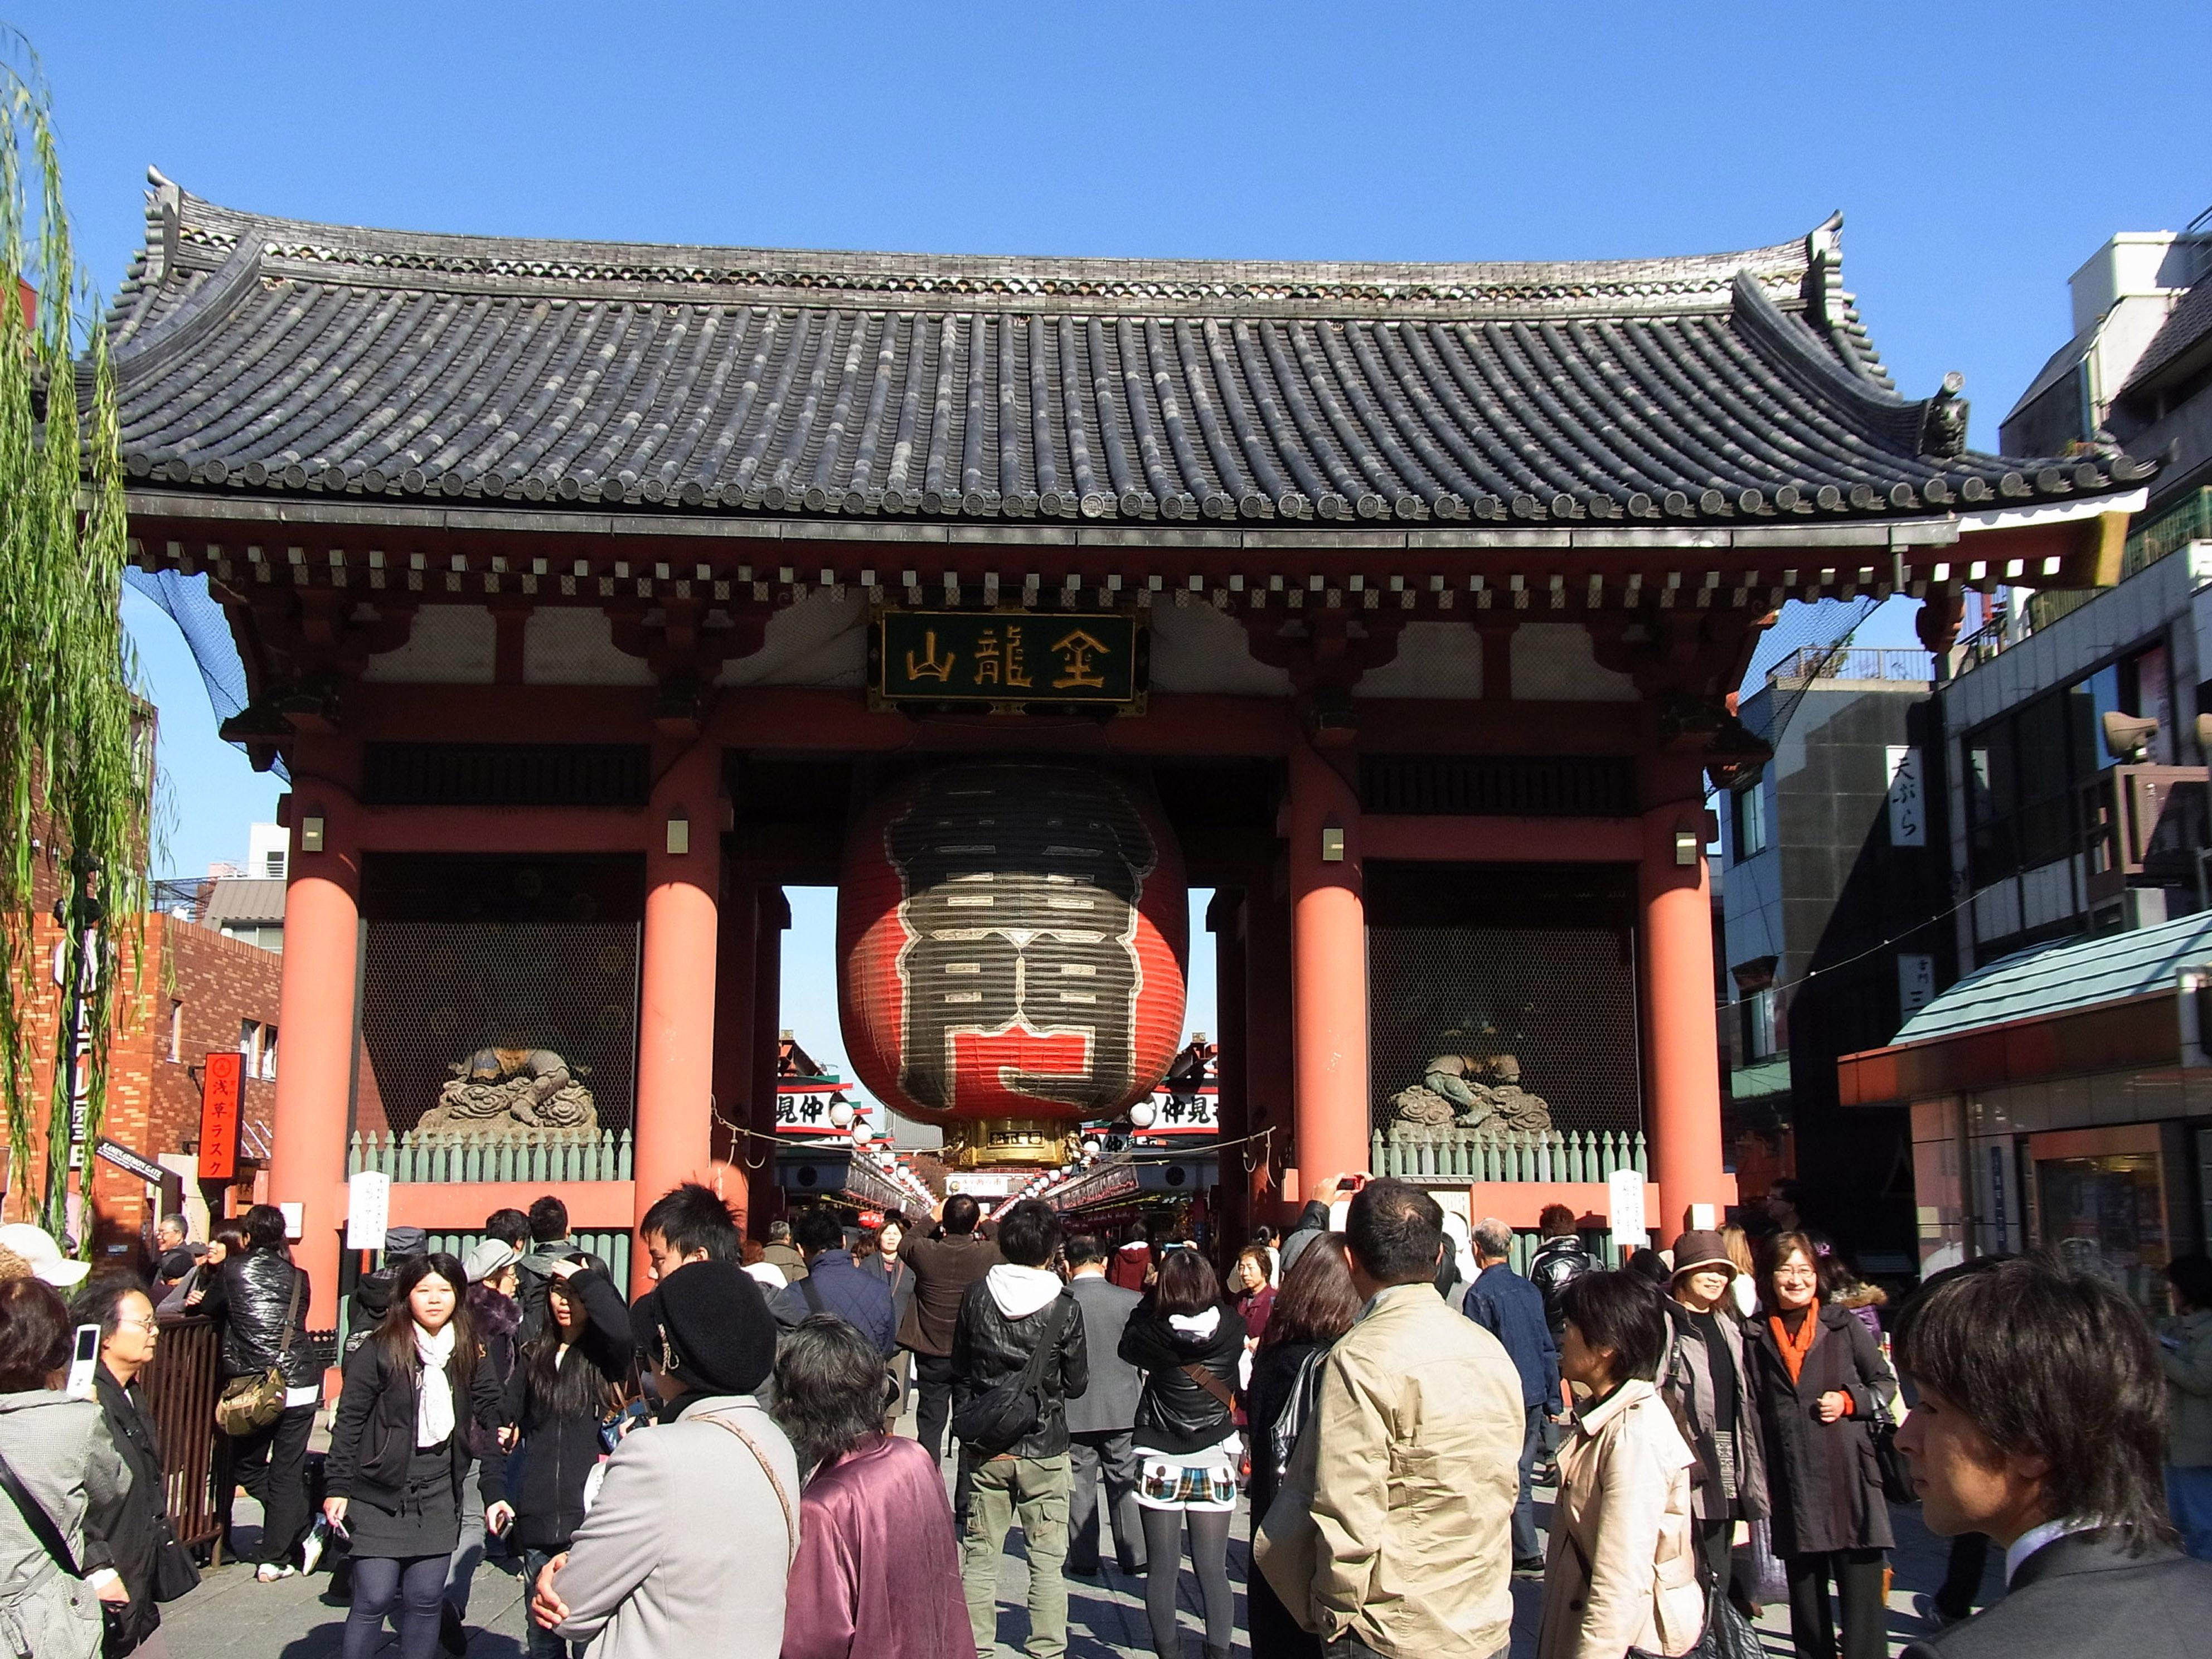 AMAZING TOKYO -Sightseeing and Shopping in Tokyo- With Lunch- Coach Bus